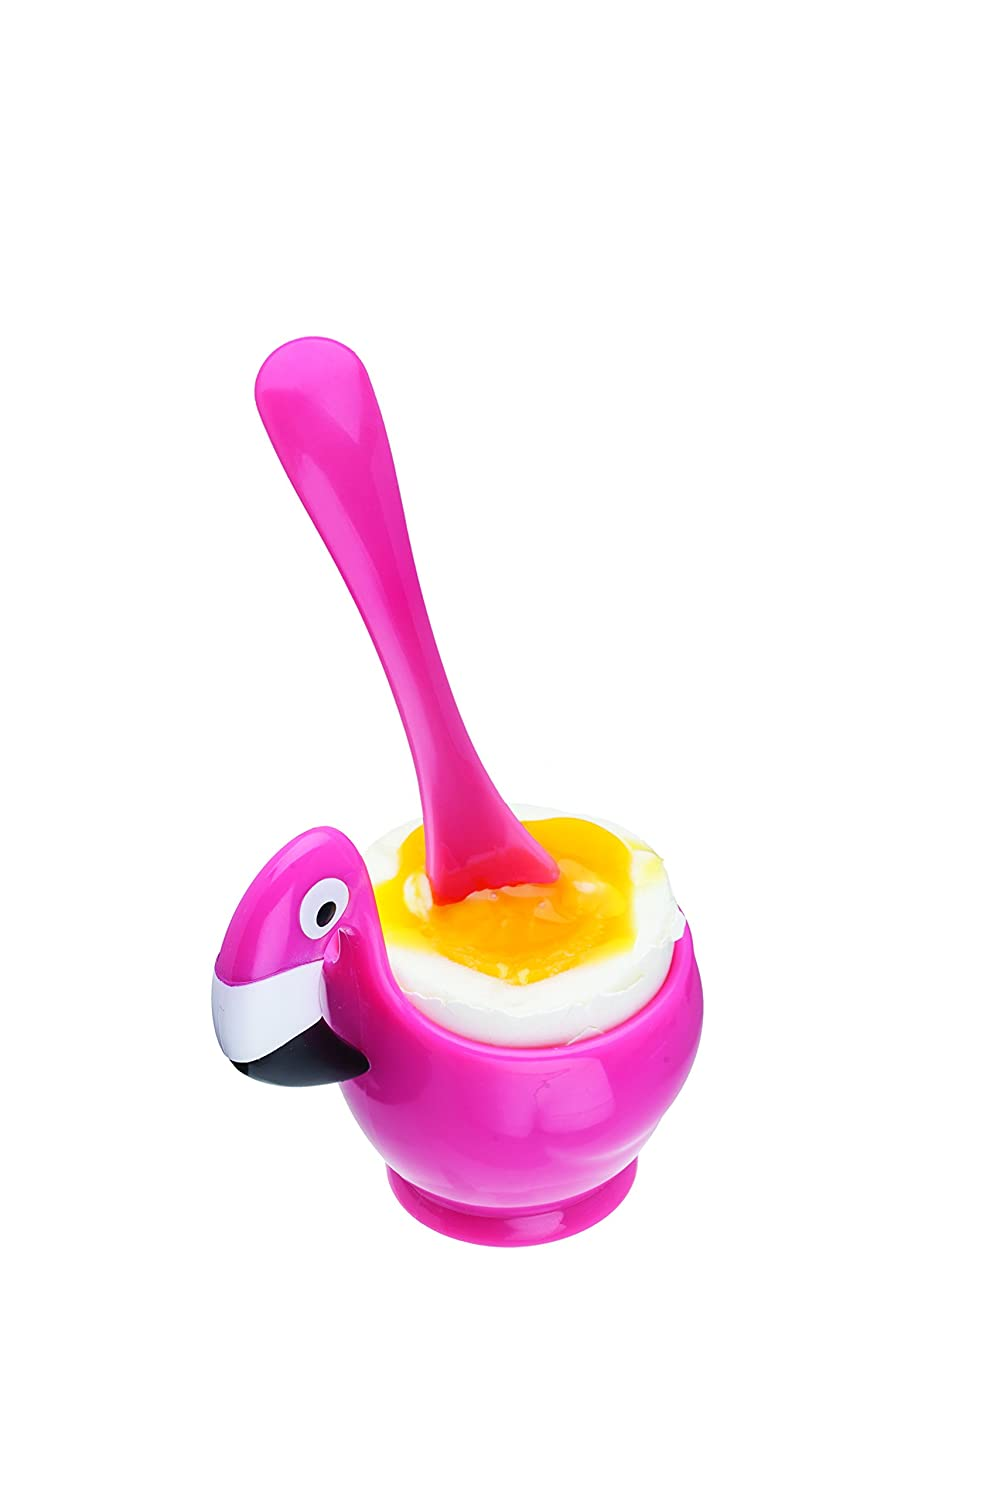 Joie FLAMINGO EGG CUP /& SPOON